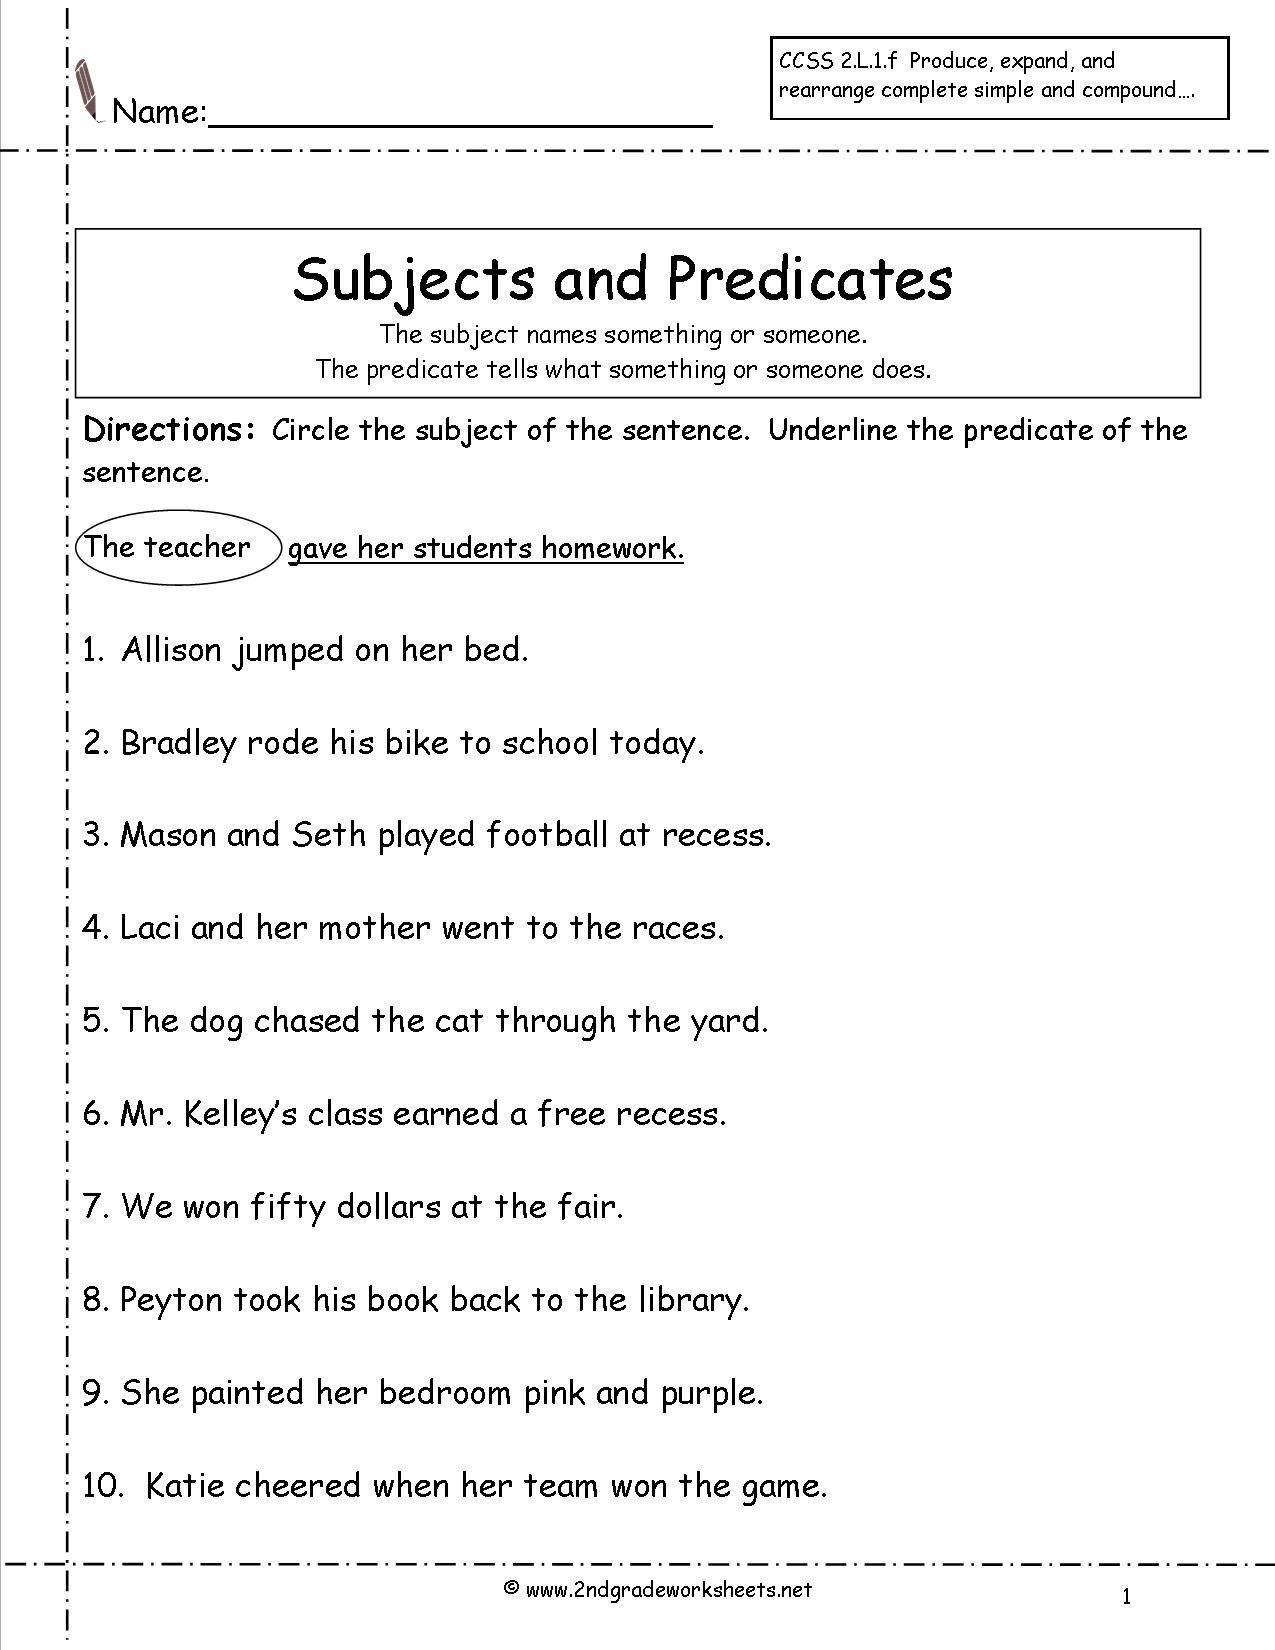 subject predicate worksheets 2nd grade - Google Search | kid stuff ...